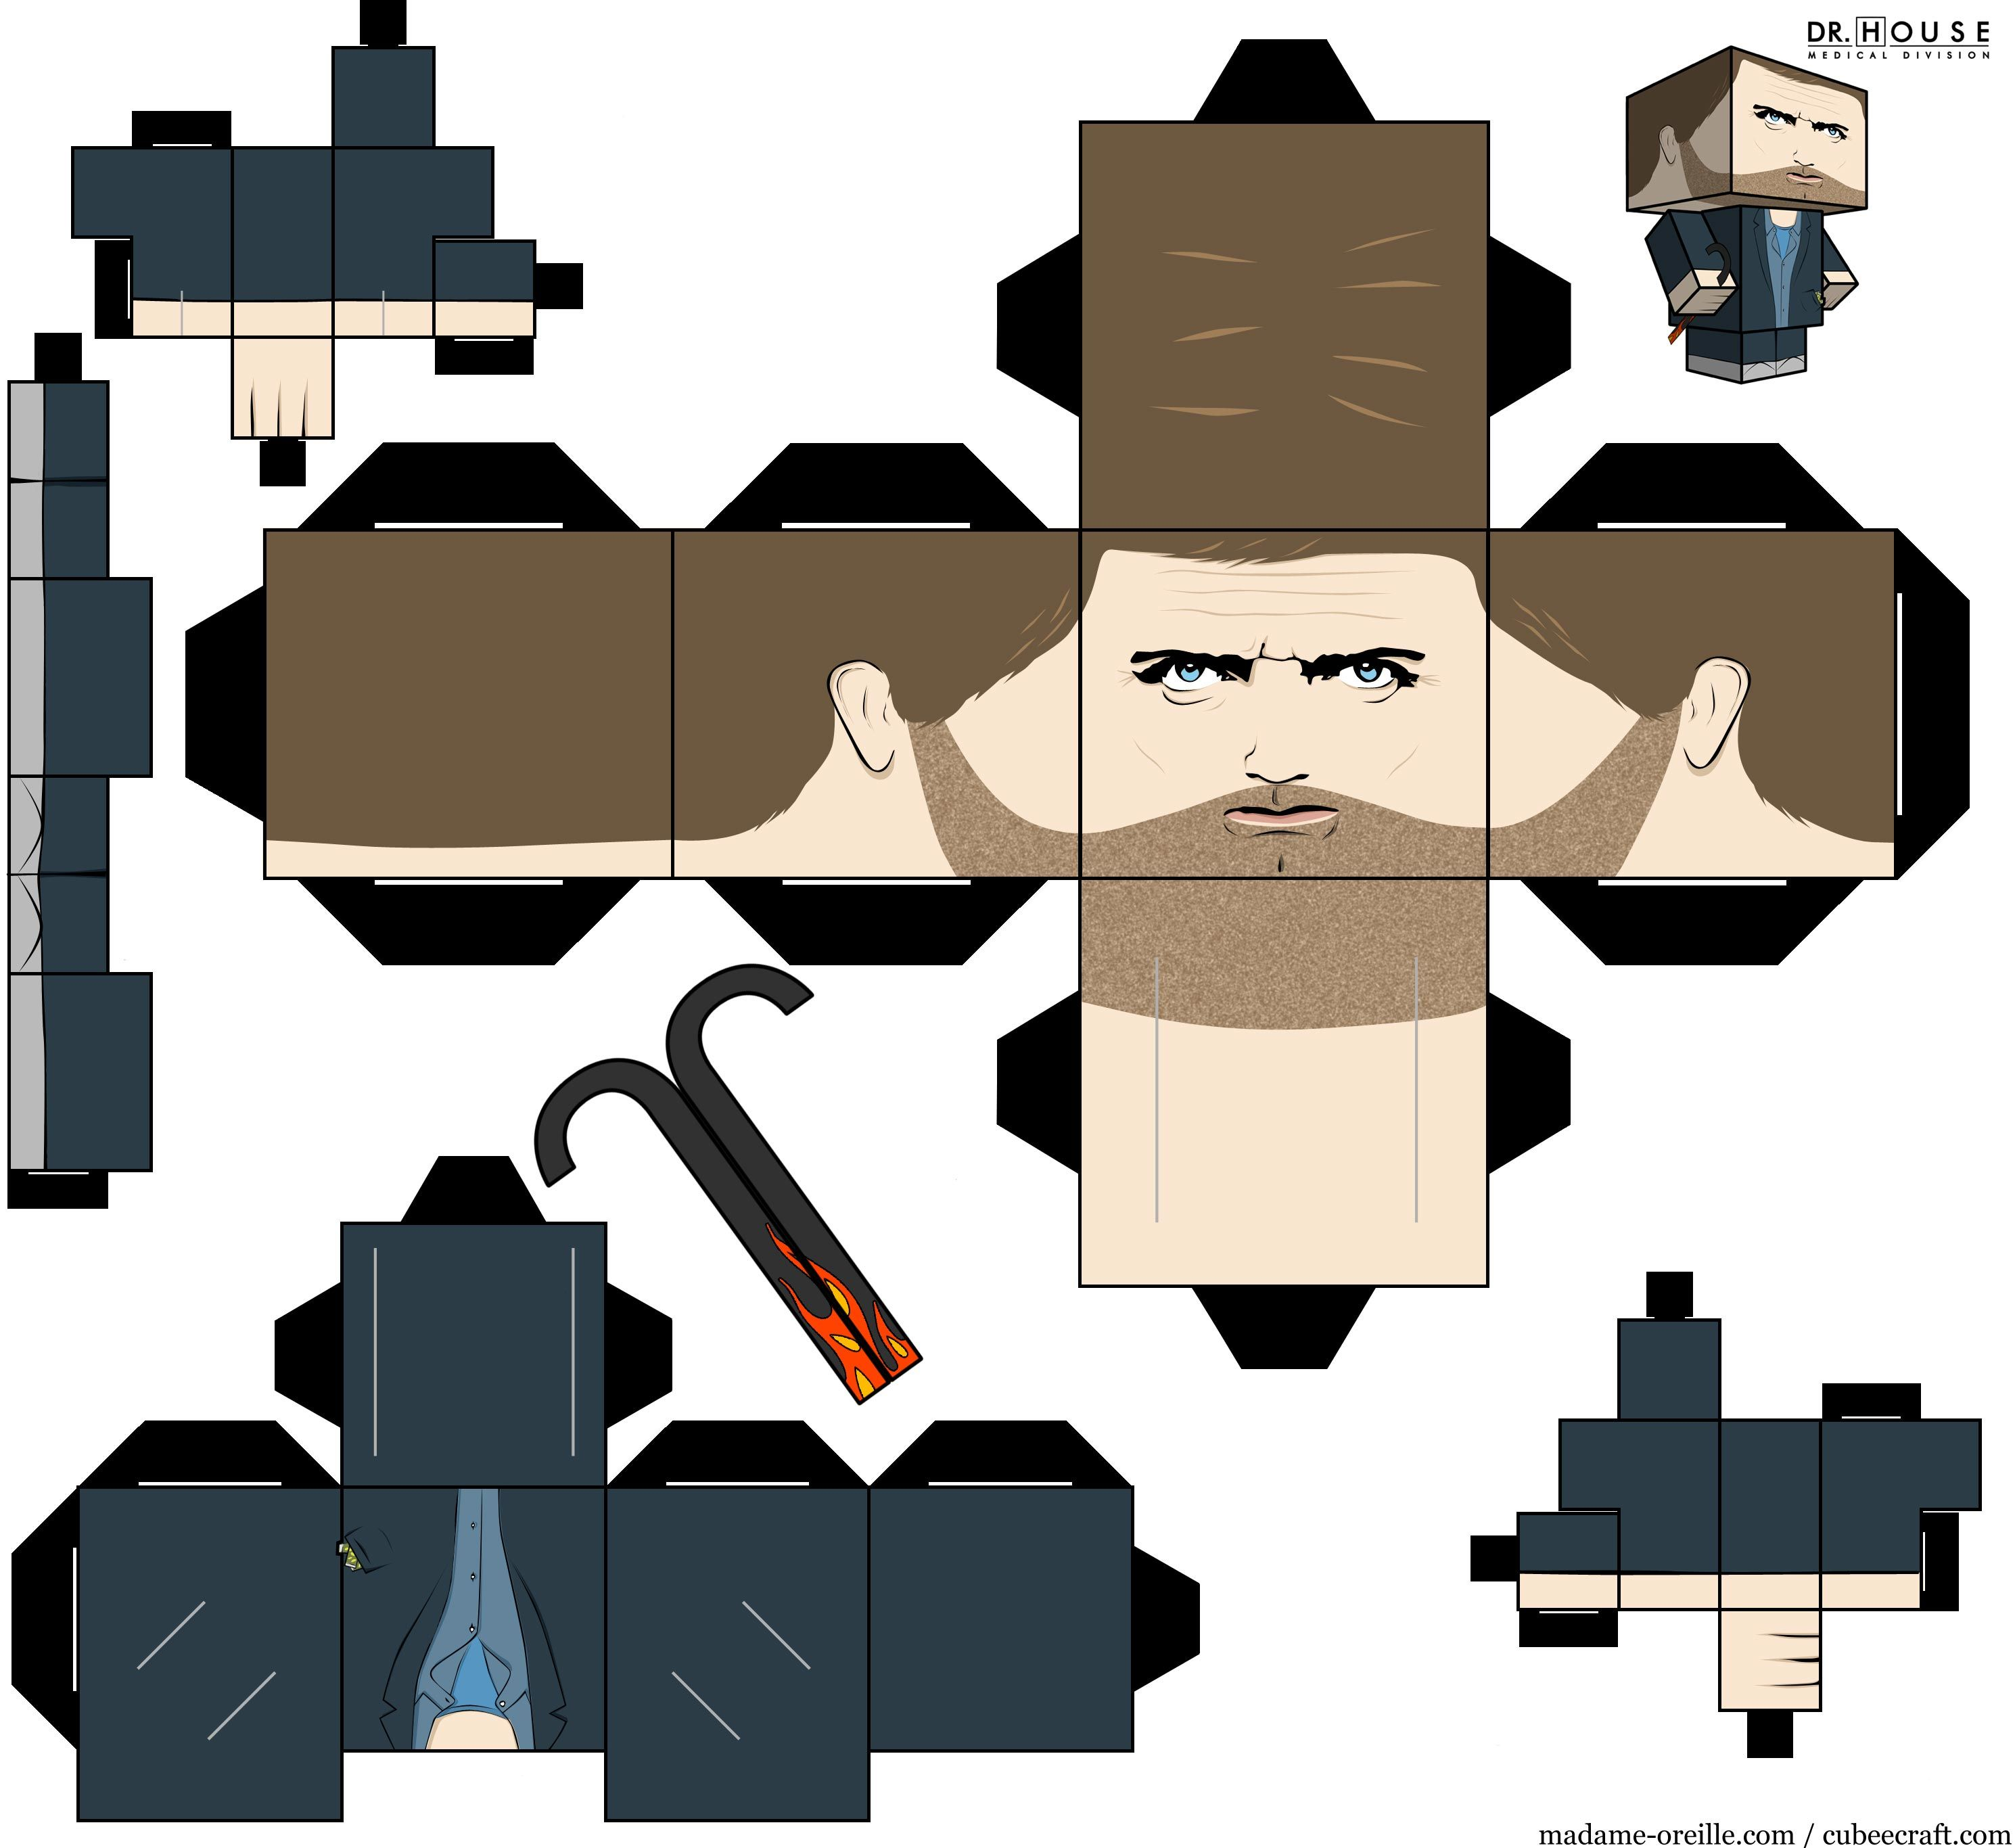 Image Detail For House Paper Toy By MadameOreille On DeviantART